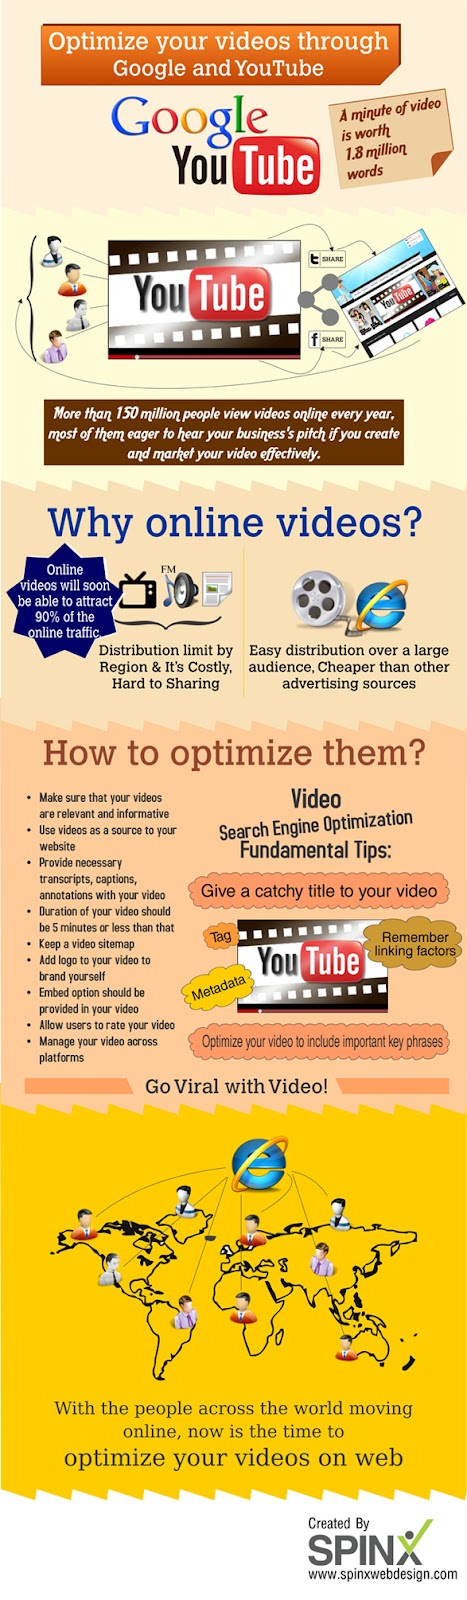 video through google youtube  Os melhores Infográficos sobre Web Video